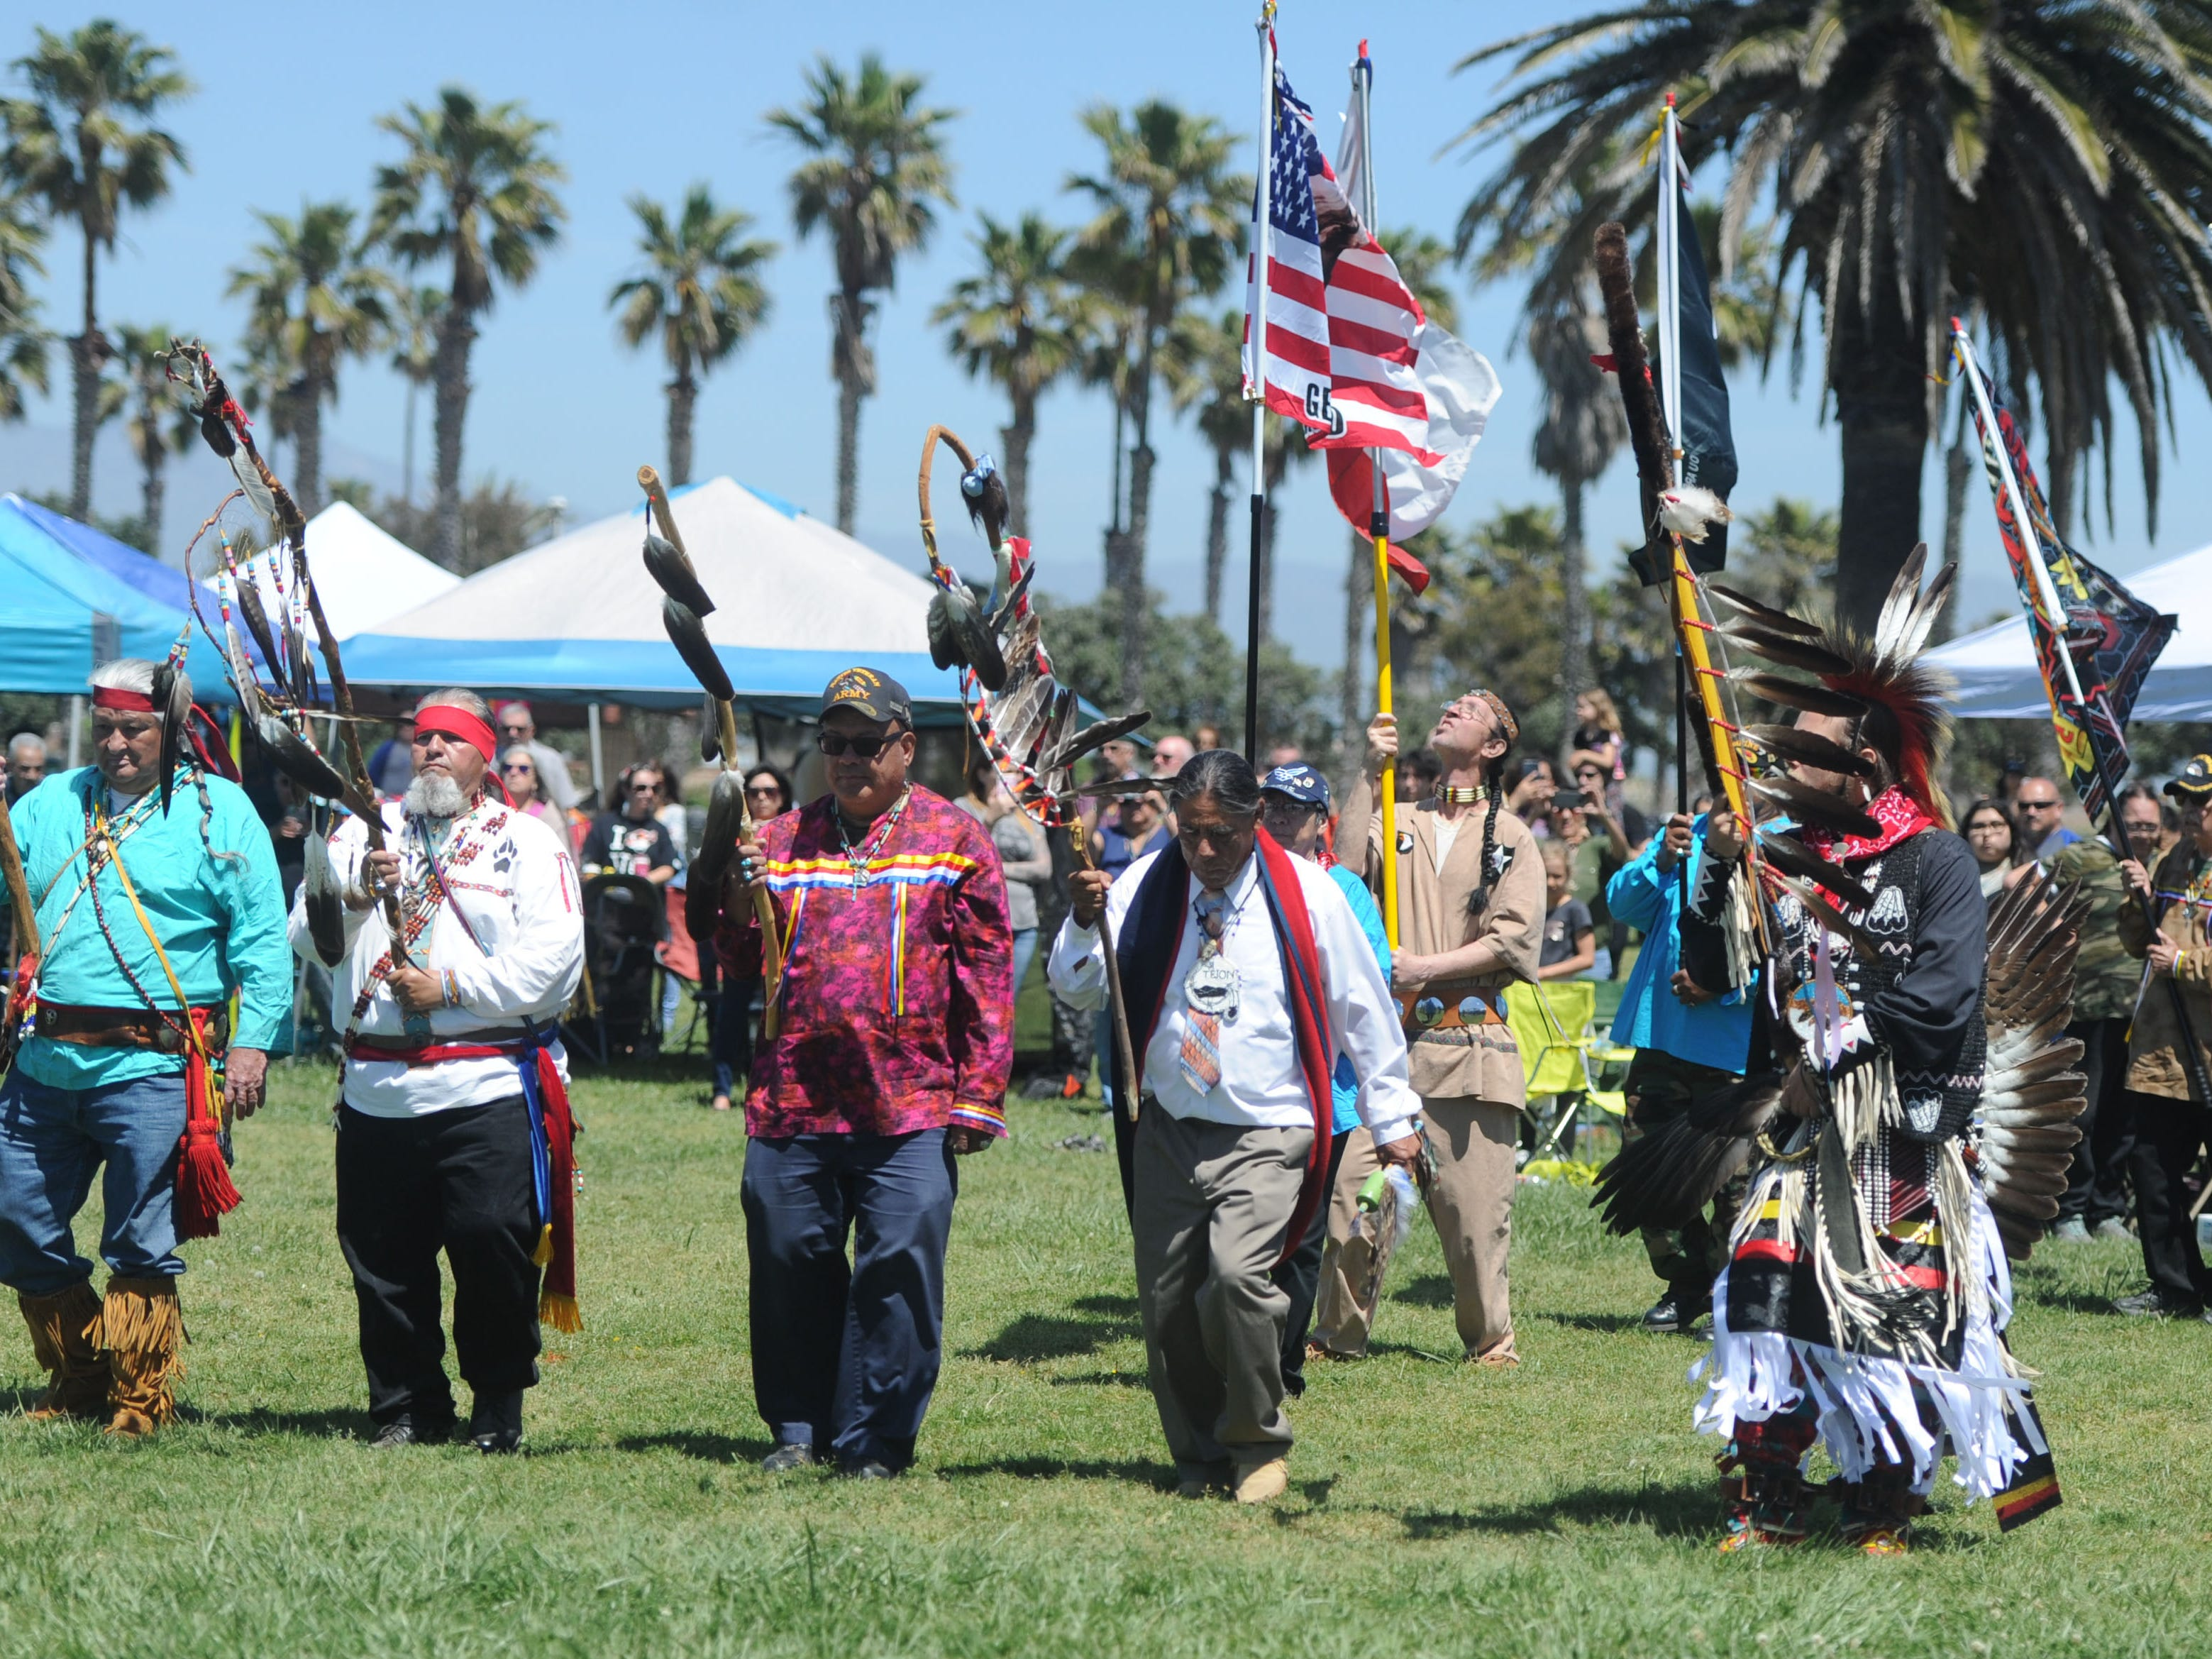 This was the grand entrance on the first day of the intertribal powwow at Oxnard Beach Park.